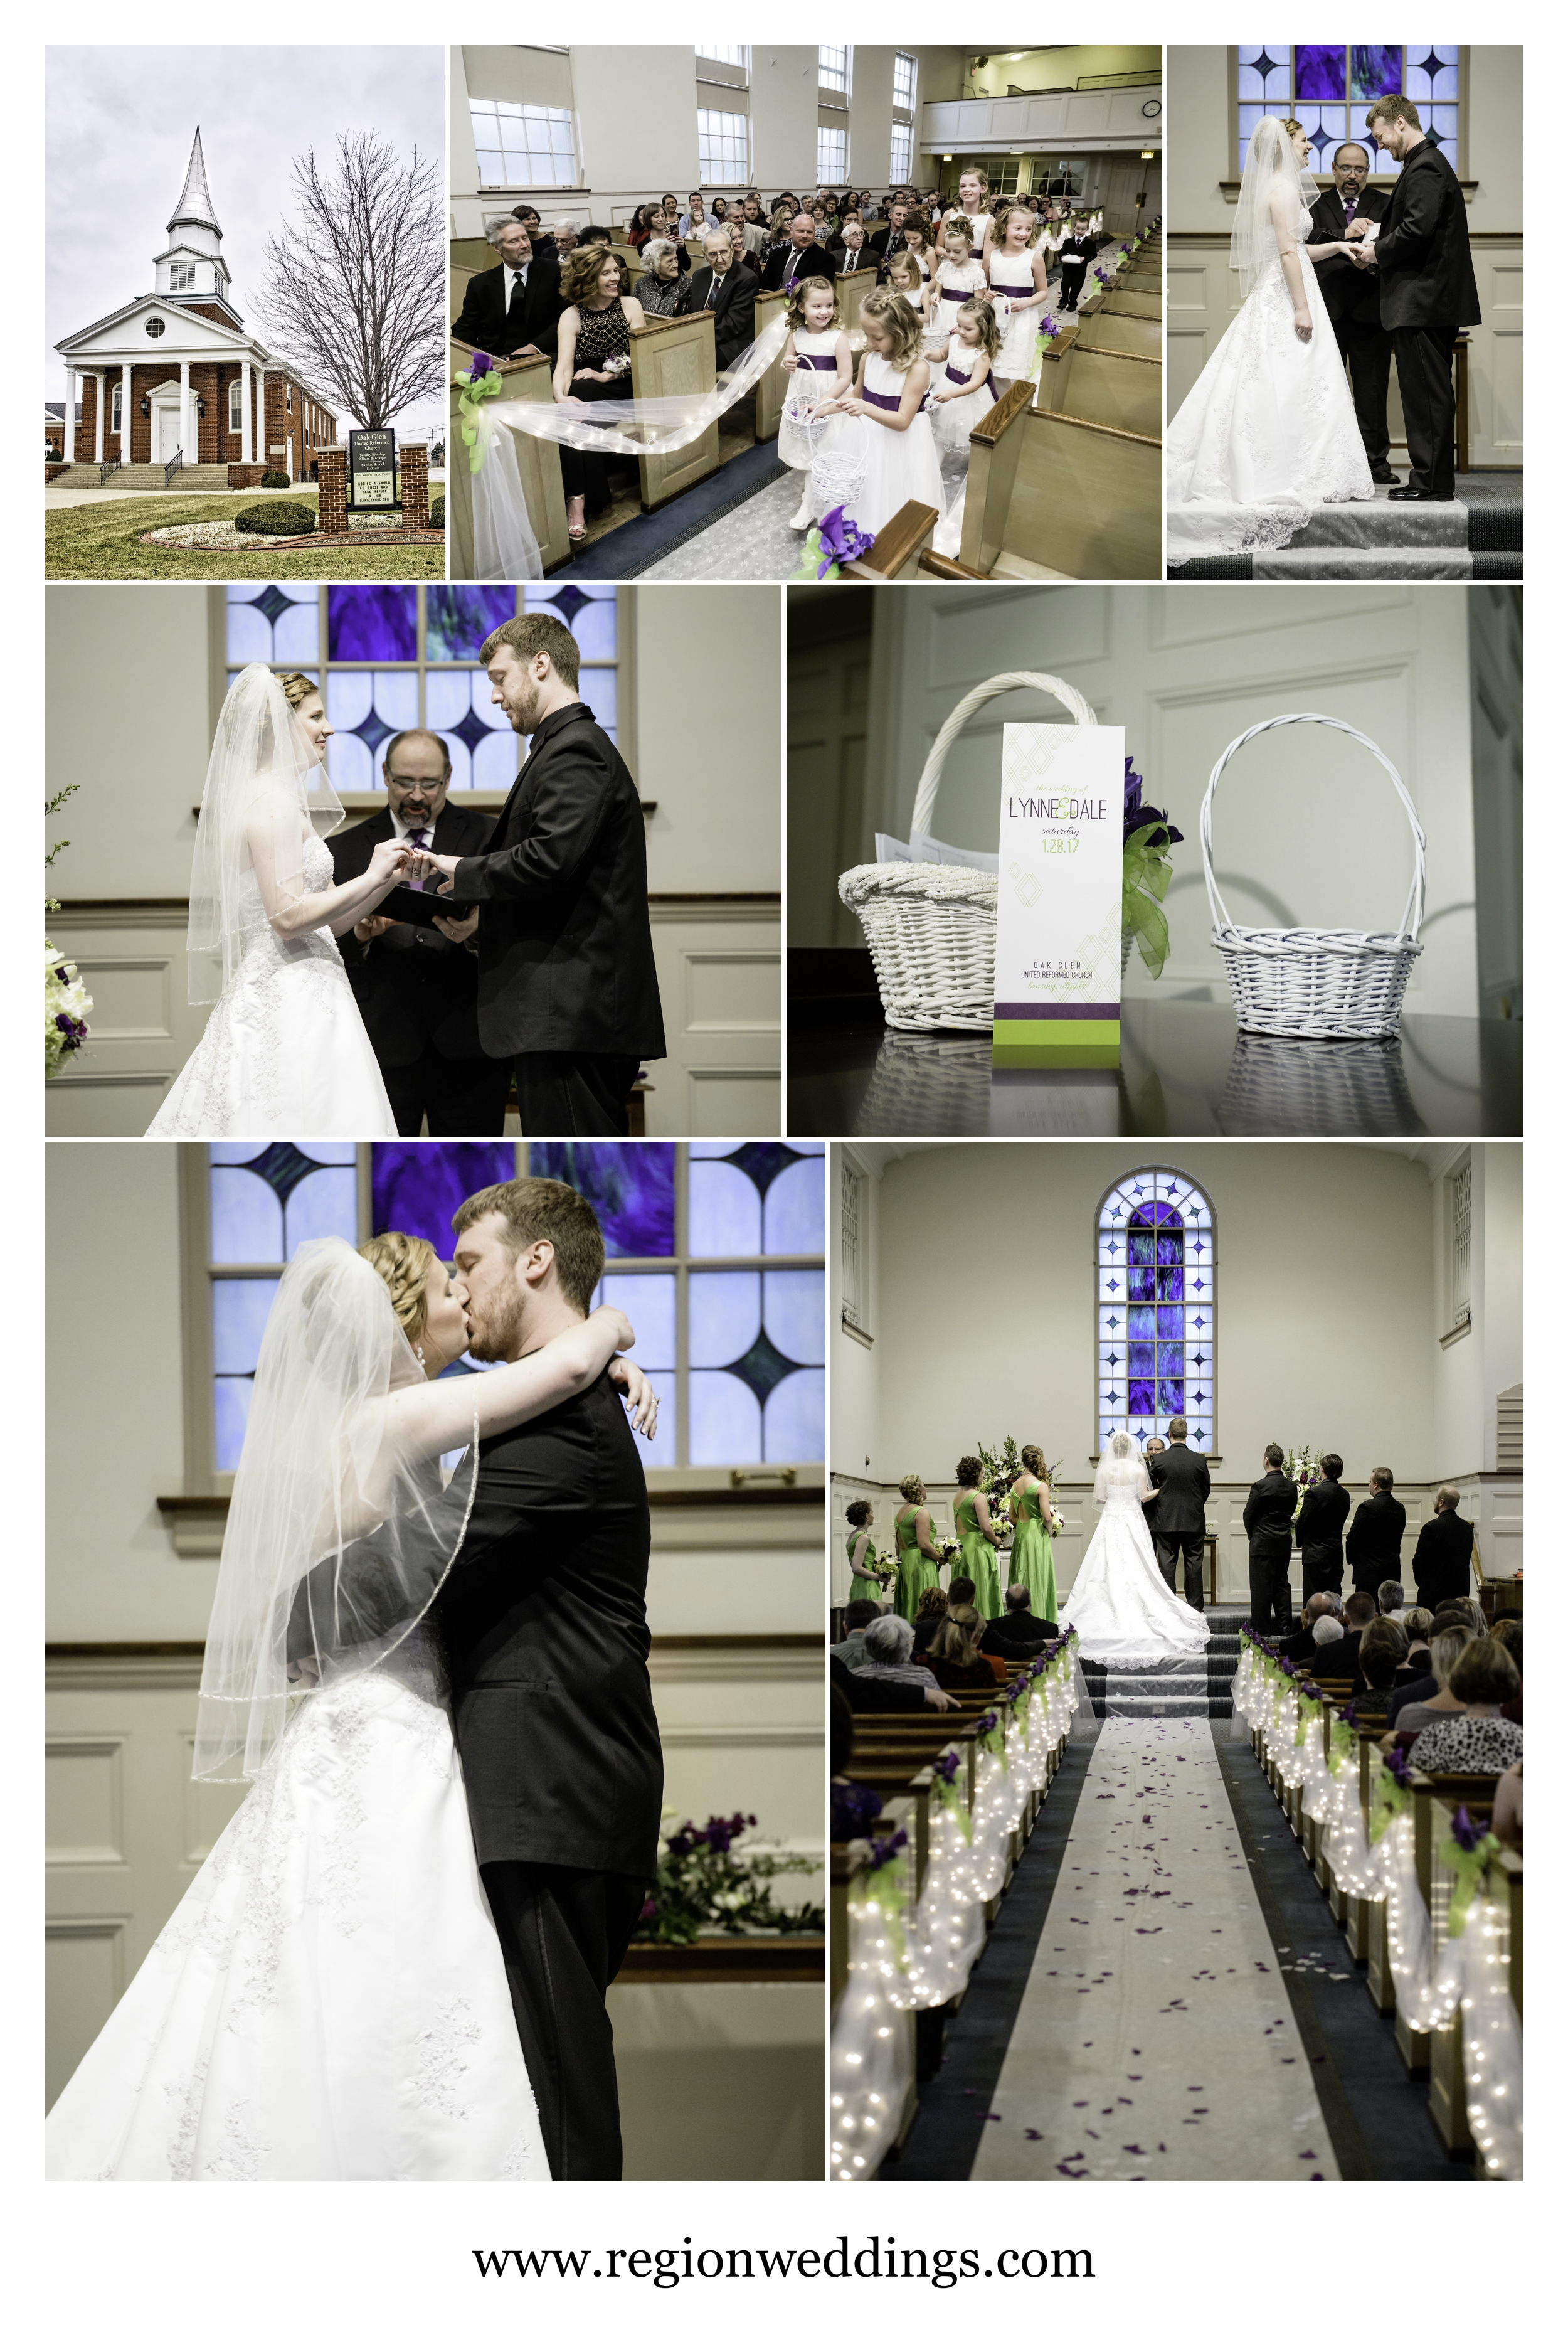 Wedding ceremony at Oak Glen United Reformed Church.